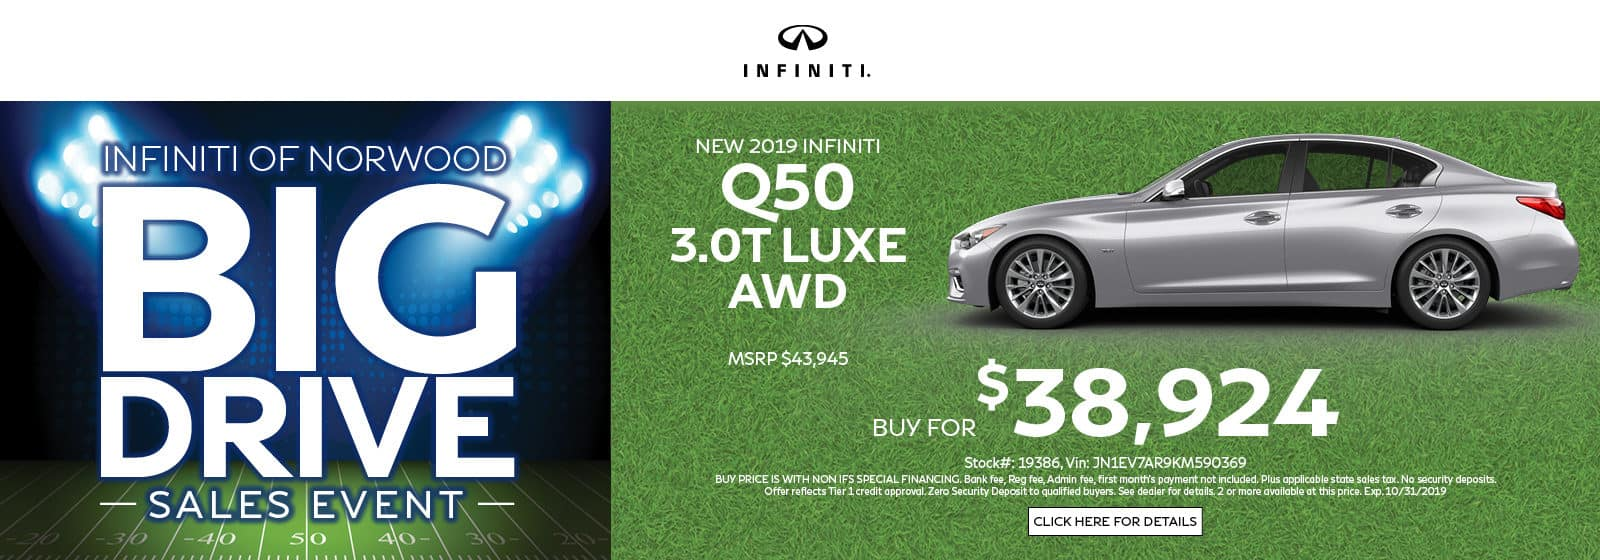 Q50 3.0T Luxe AWD buy for $38,924